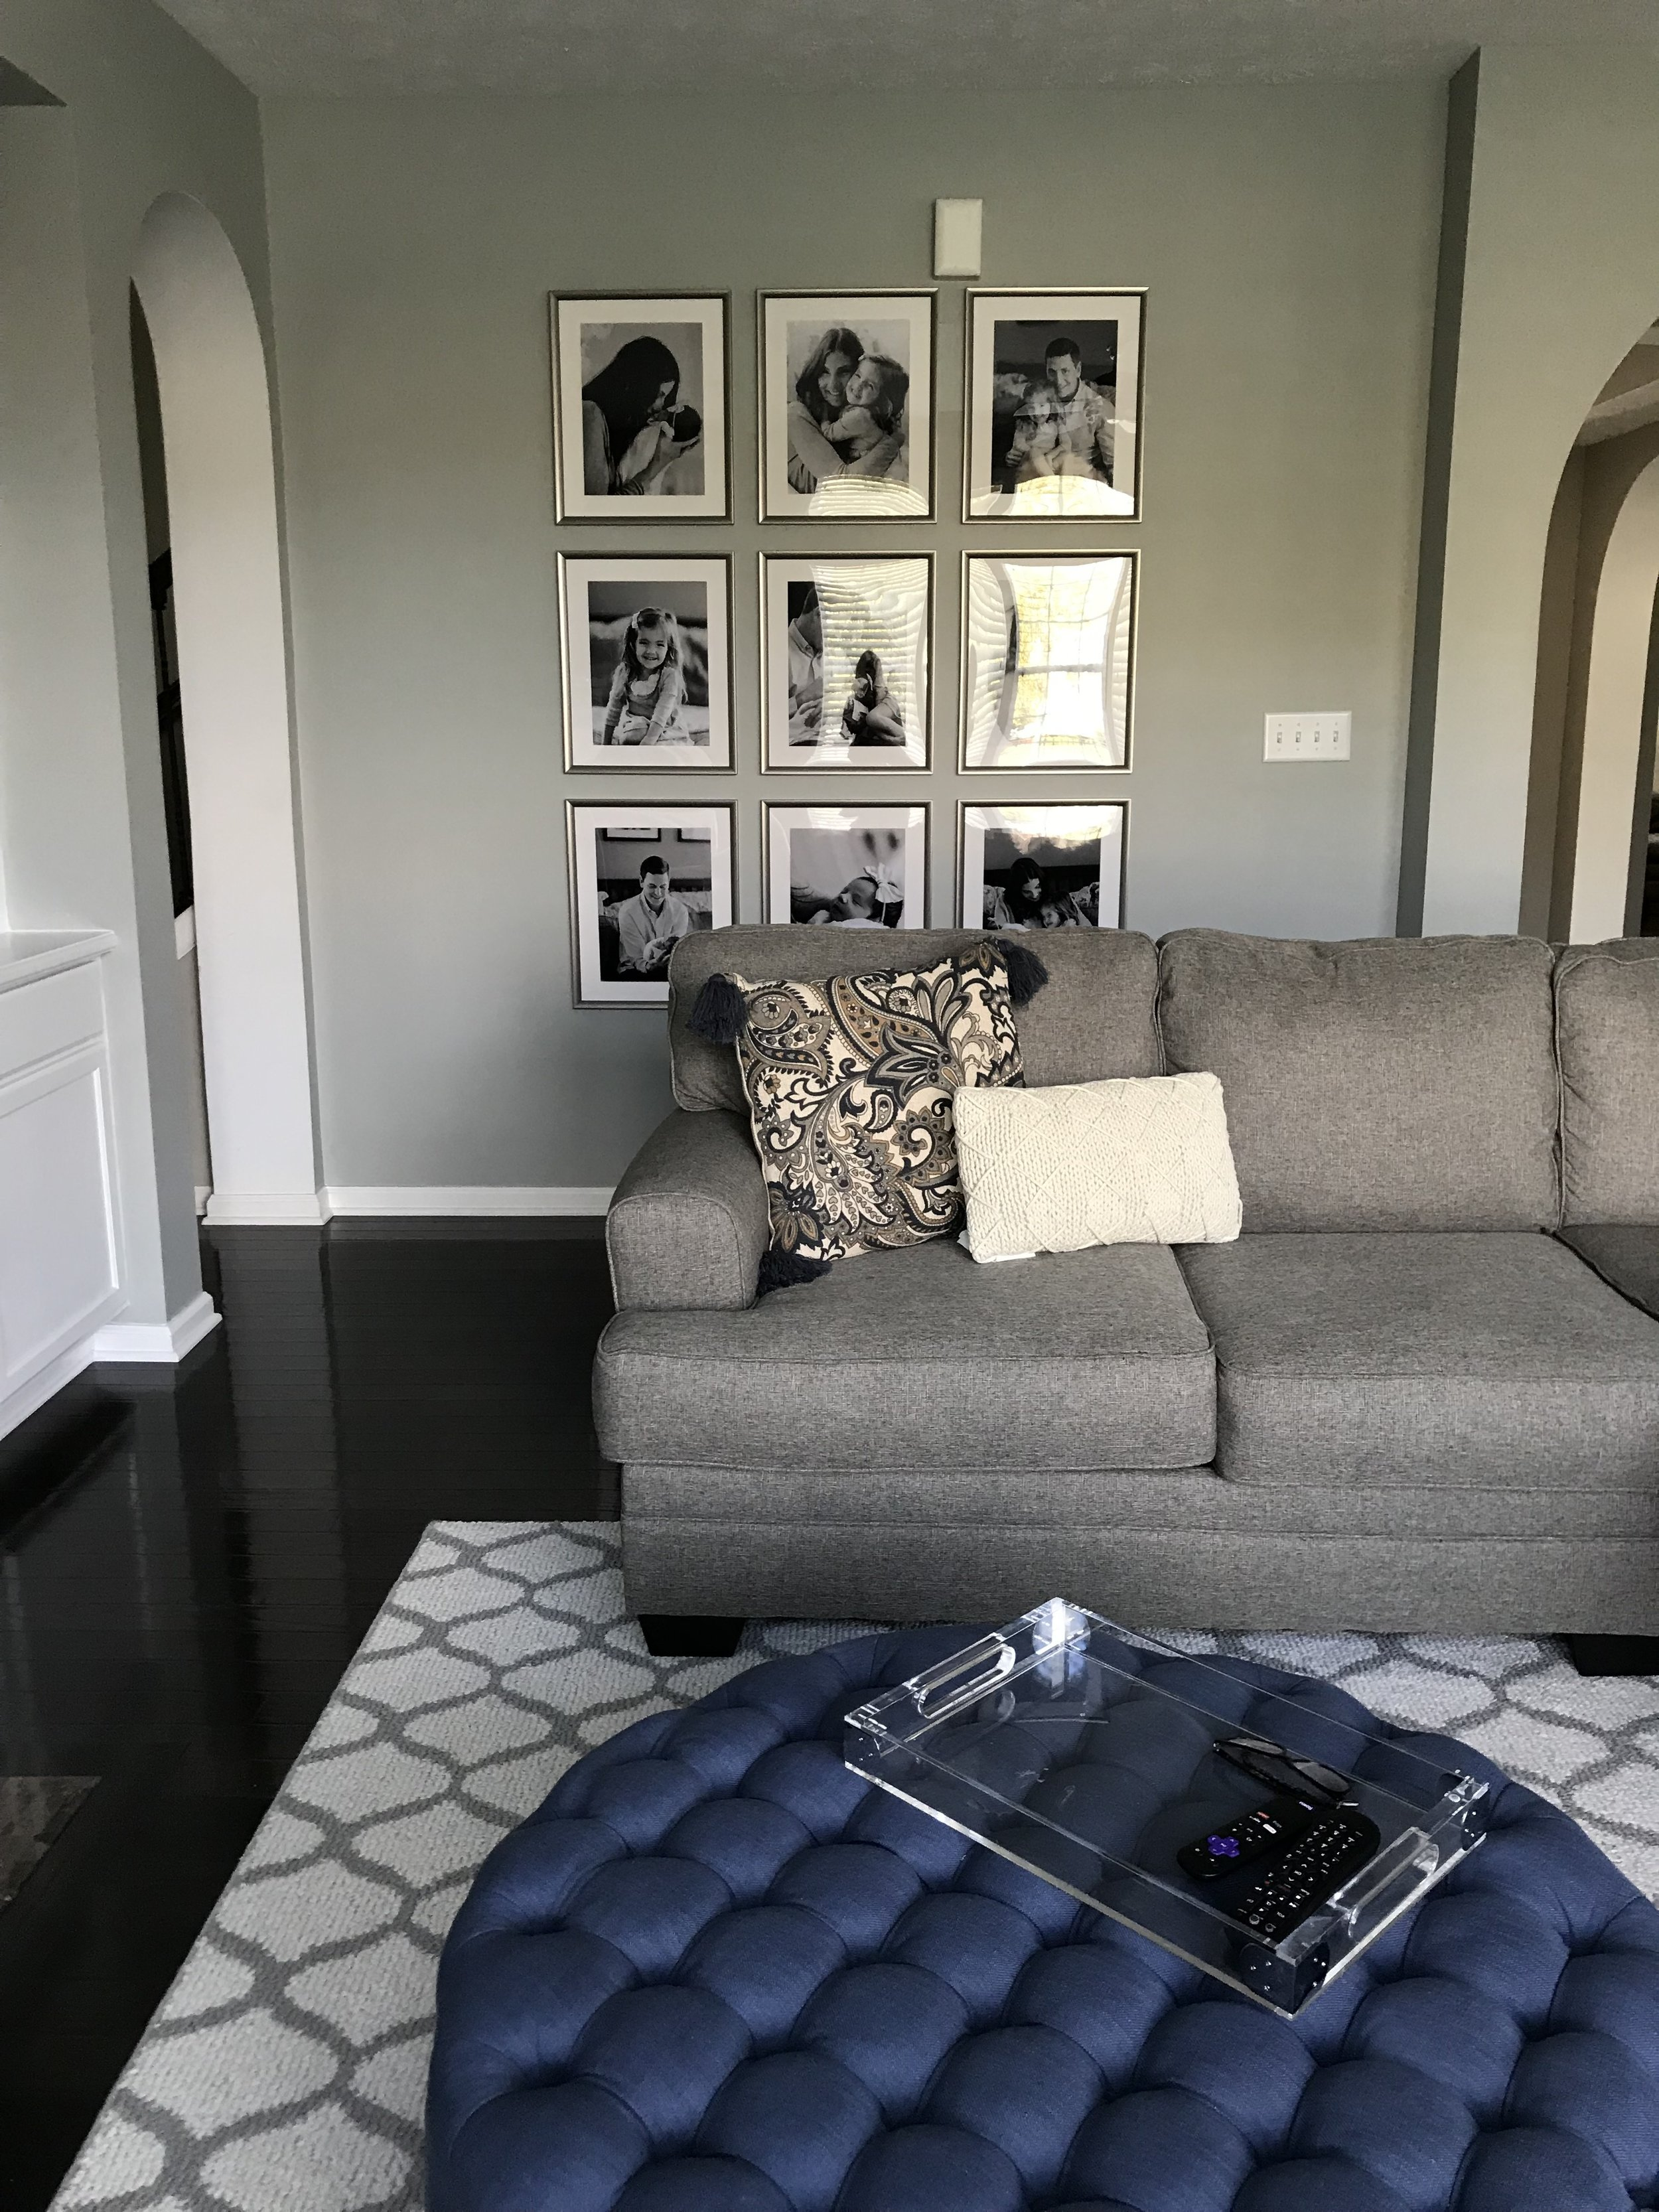 Gallery Wall - Ikea Frames and Costco Prints